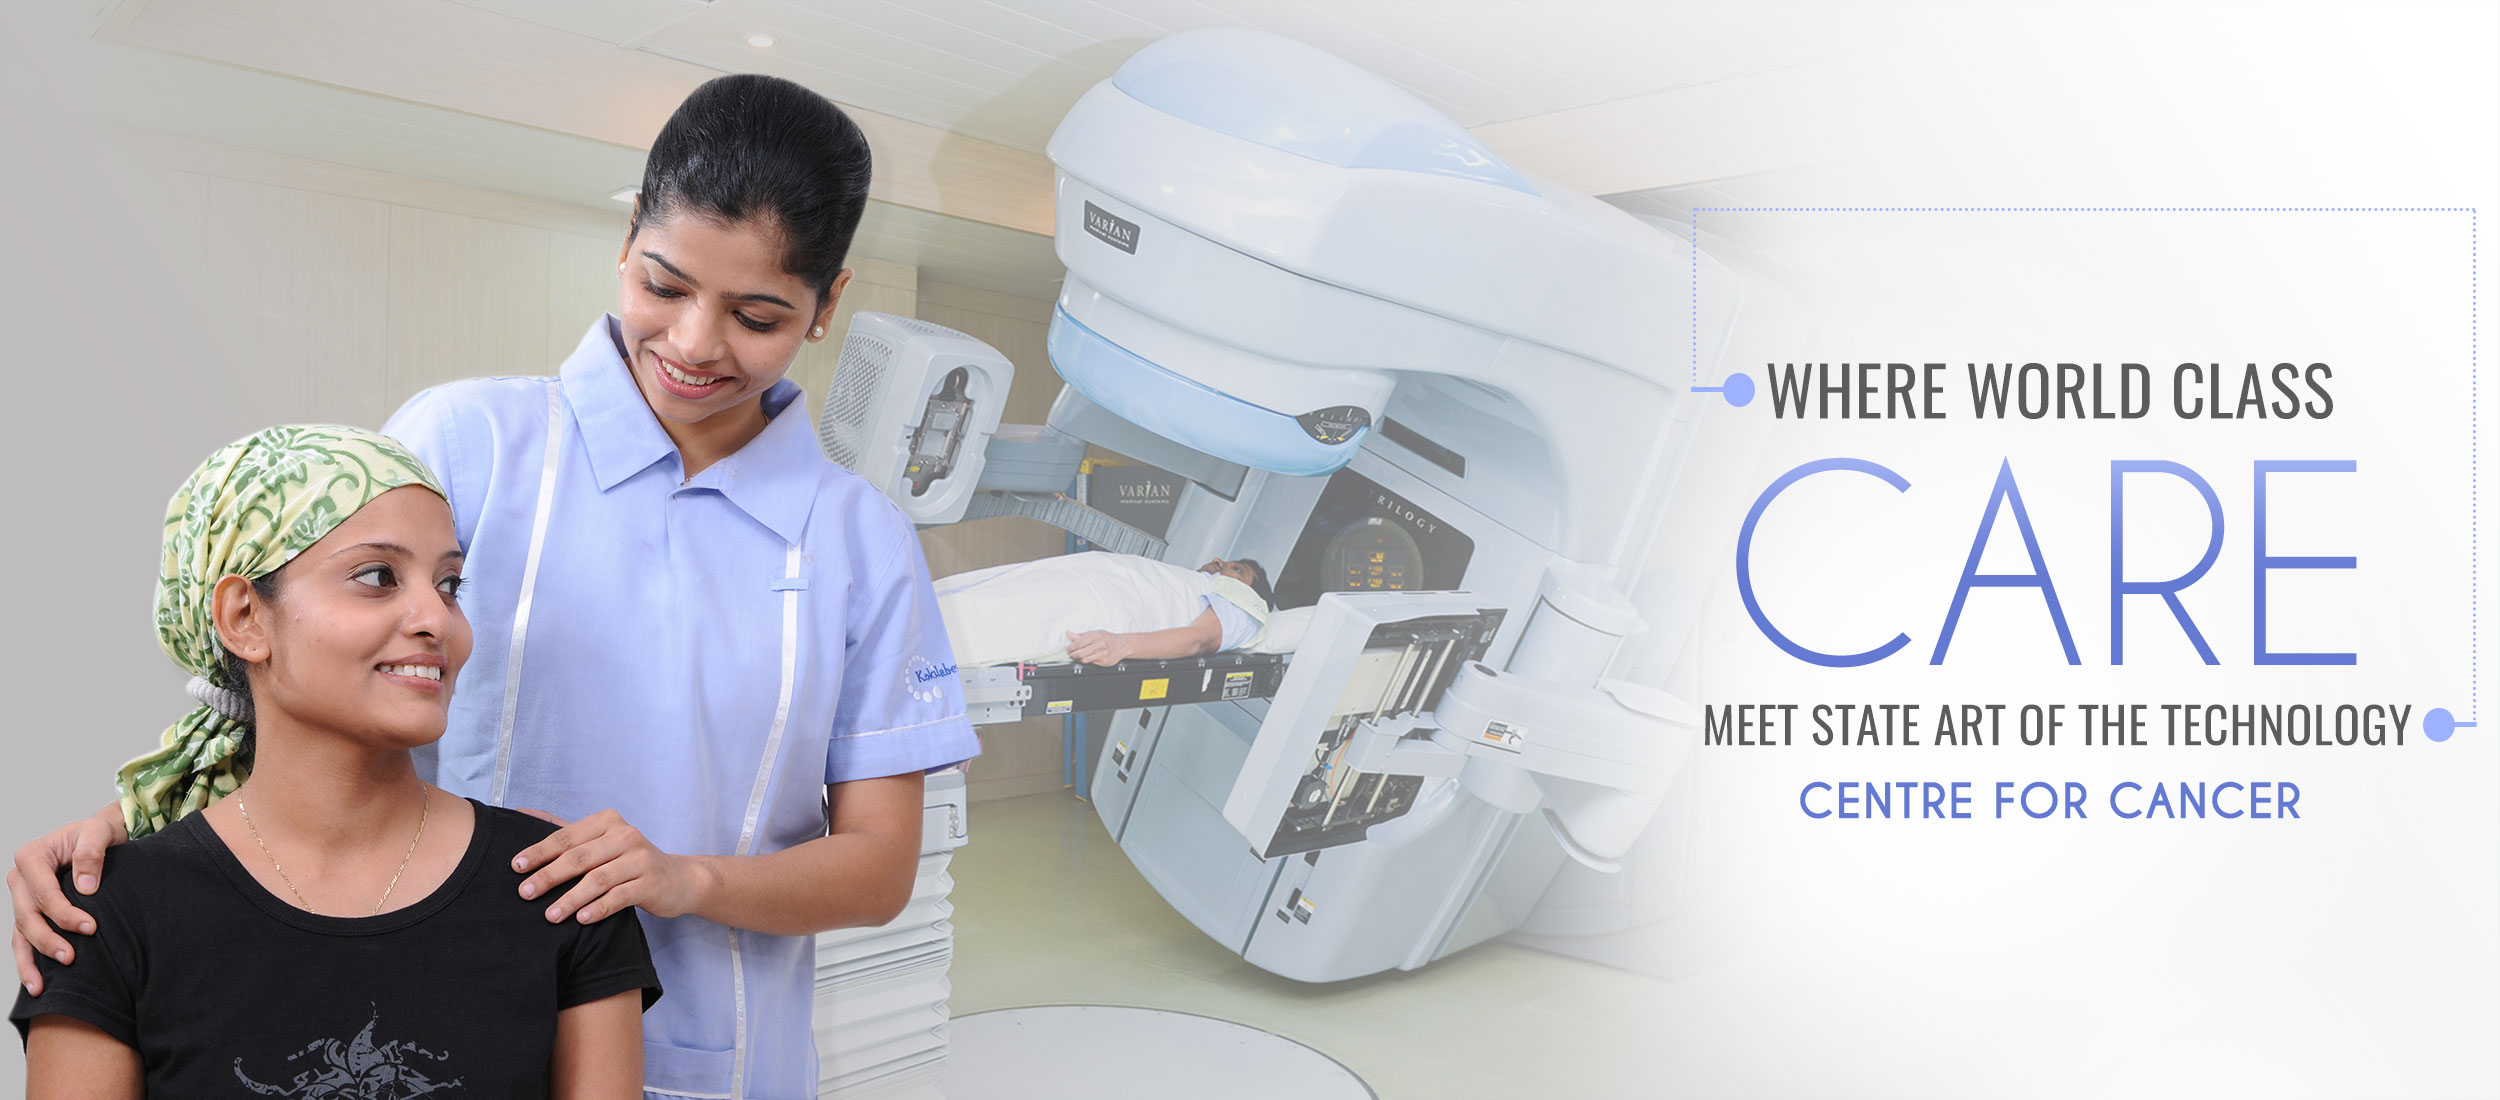 KDAH - Meet State Art Of The Technology Centre For Cancer